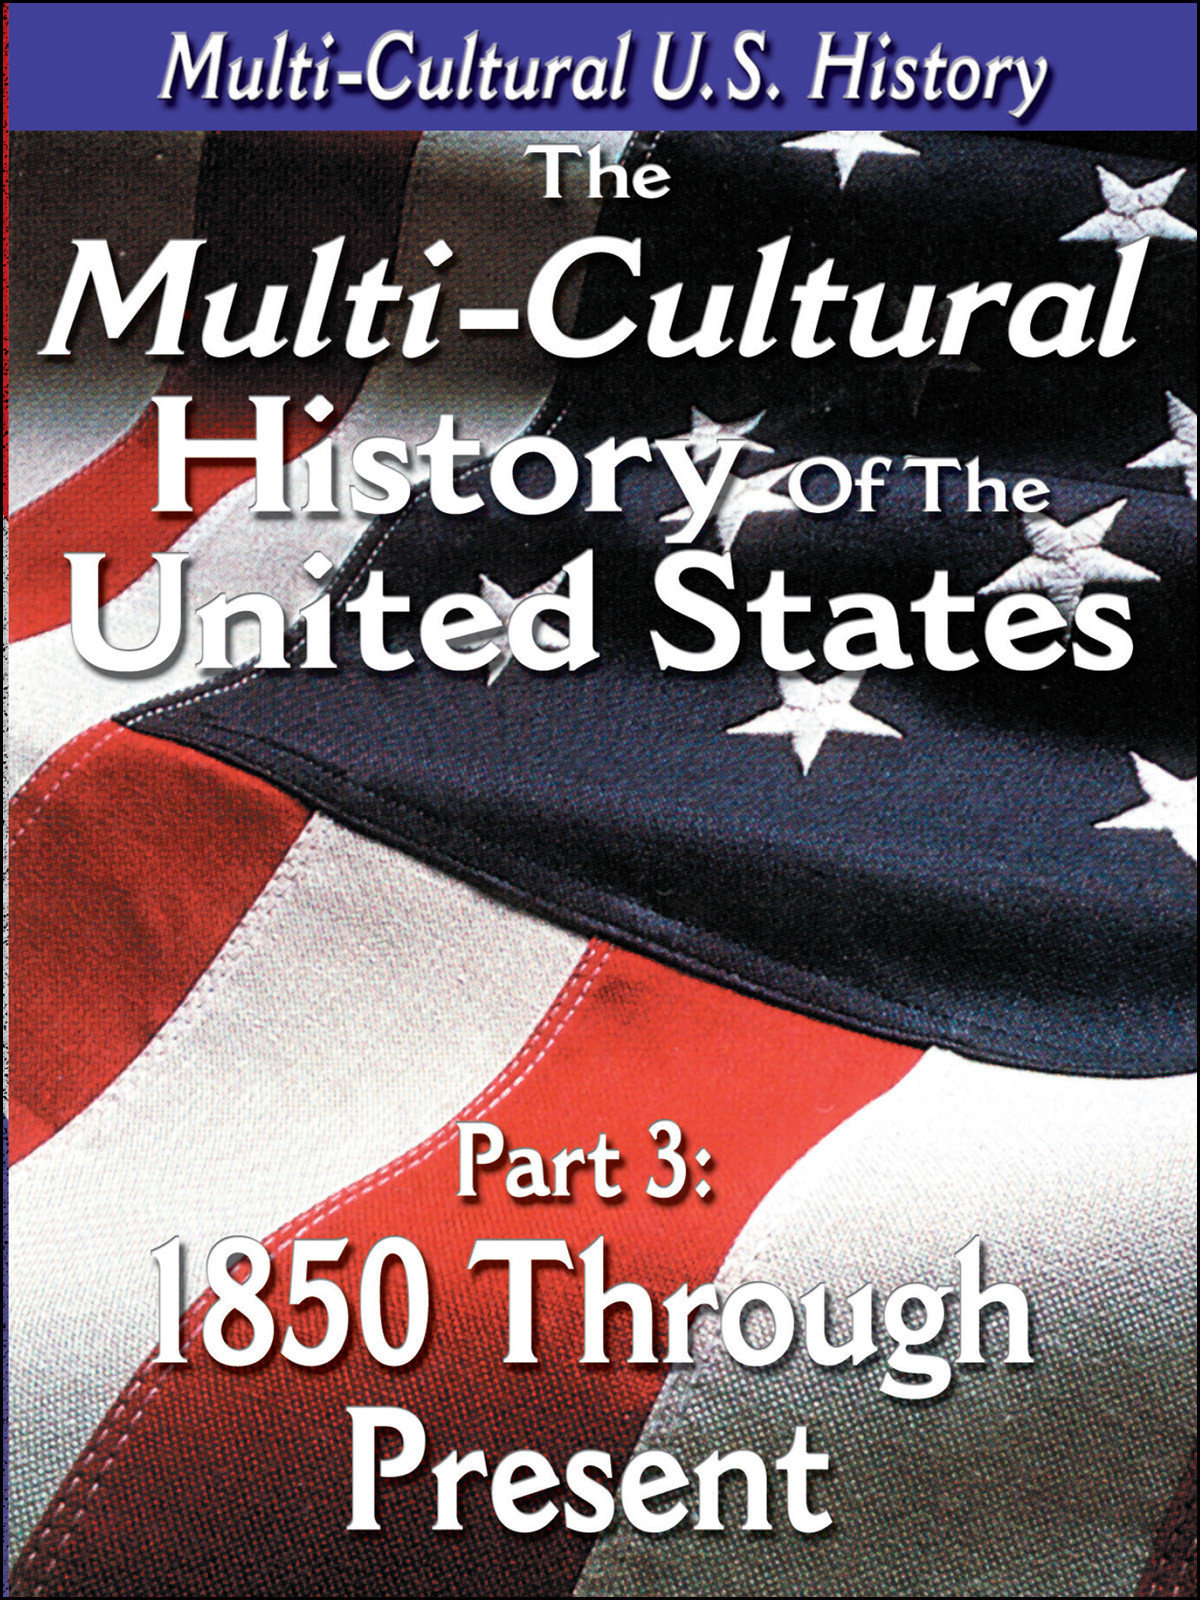 L919 - The History of the United States 1850 through Present Day